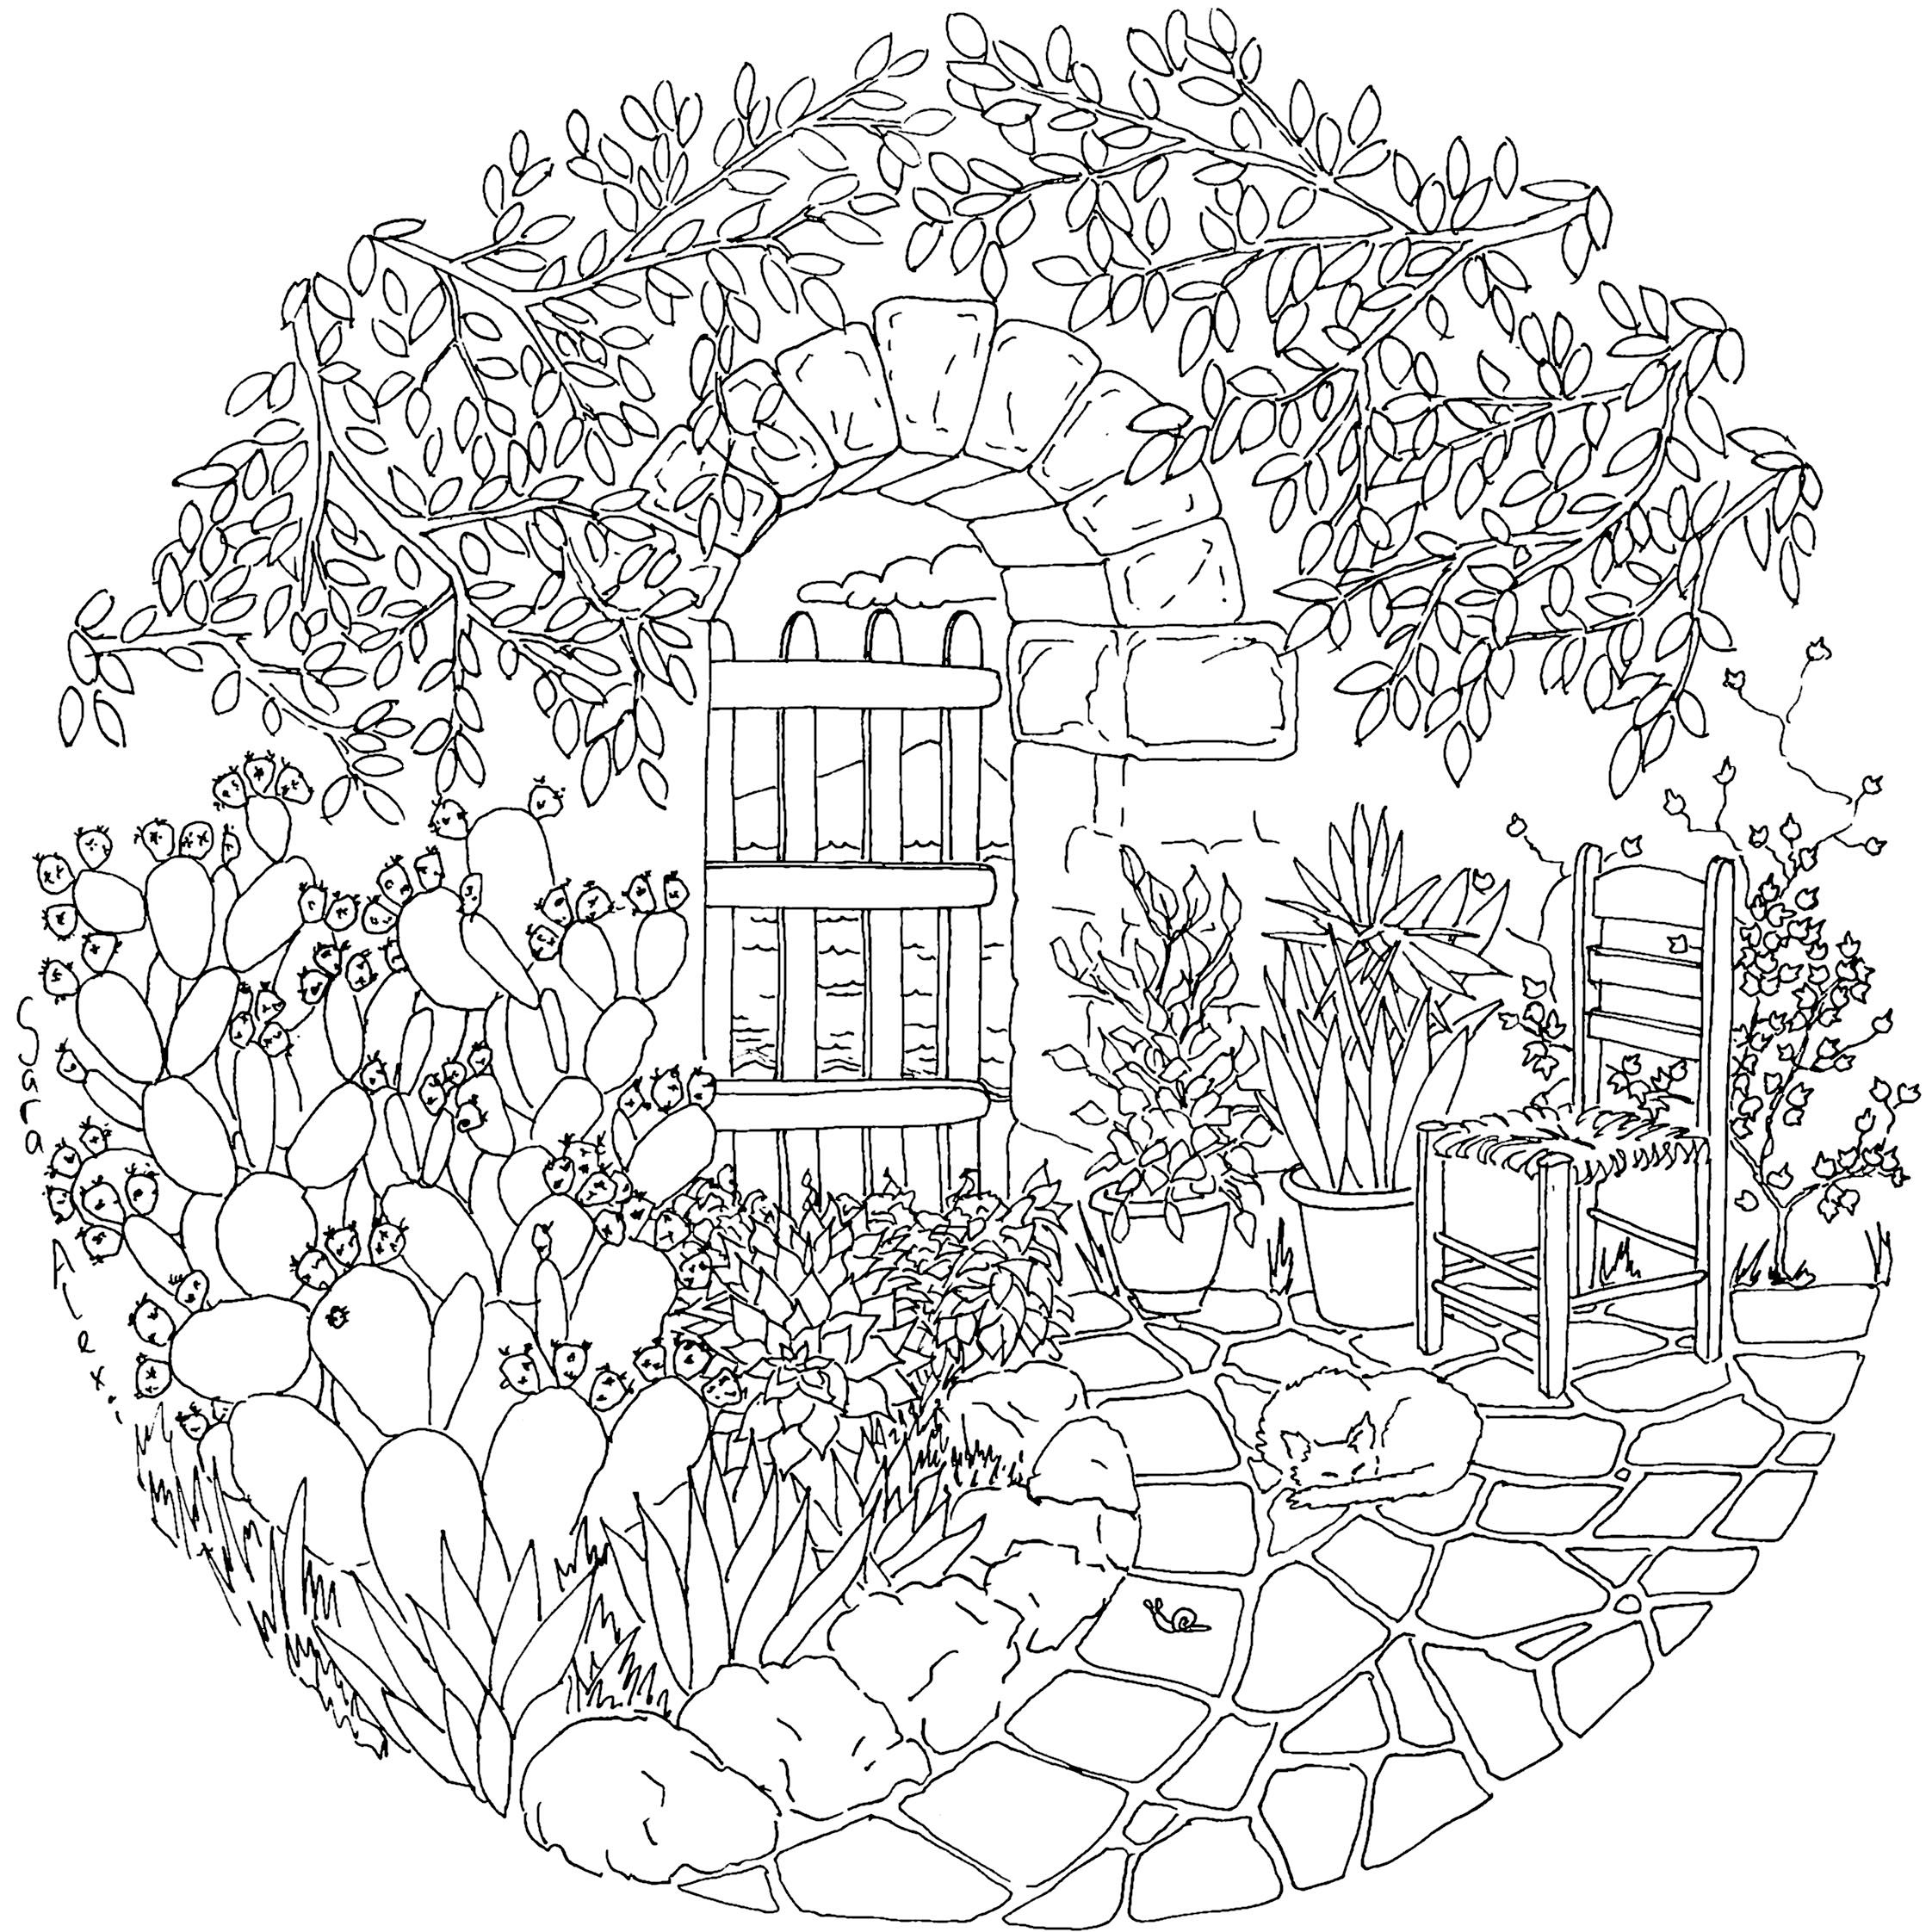 Adulting coloring pages ~ bi-garden-copy | Art | Coloring books, Free adult coloring ...